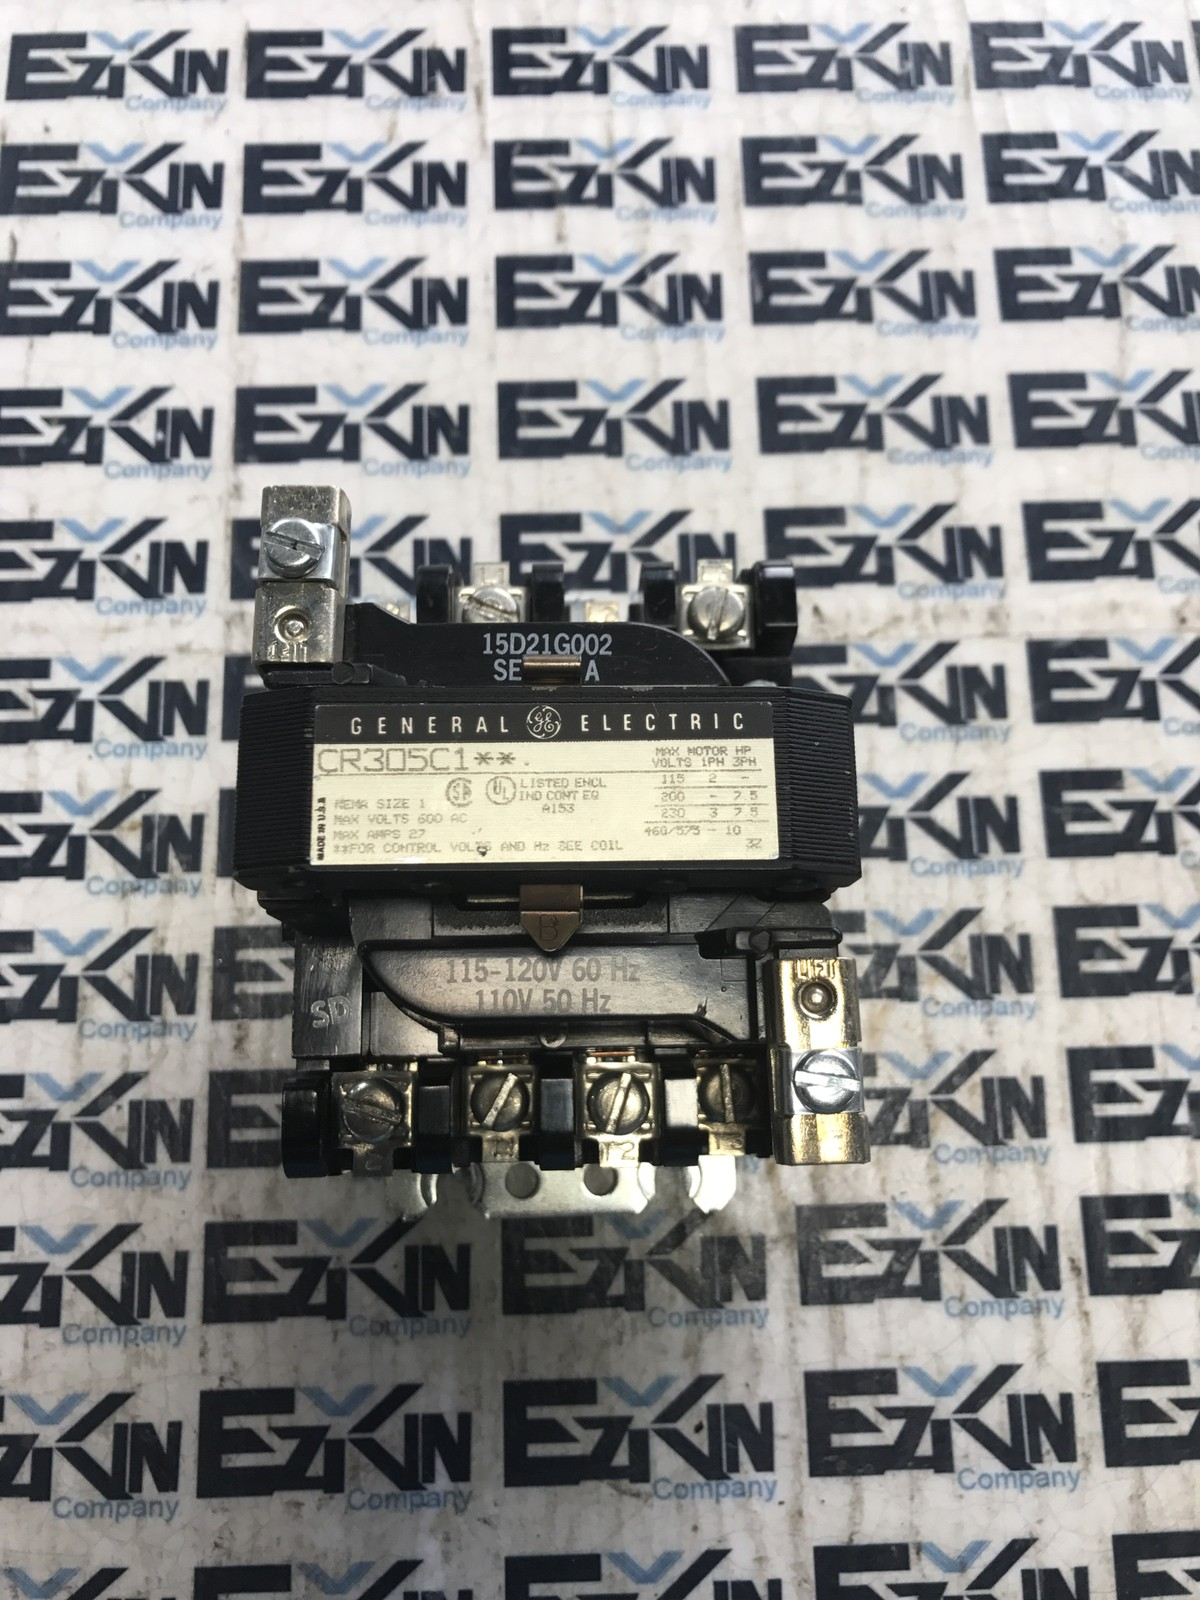 GENERAL ELECTRIC CR305C1** CONTACTOR NEMA SIZE 1 600AC